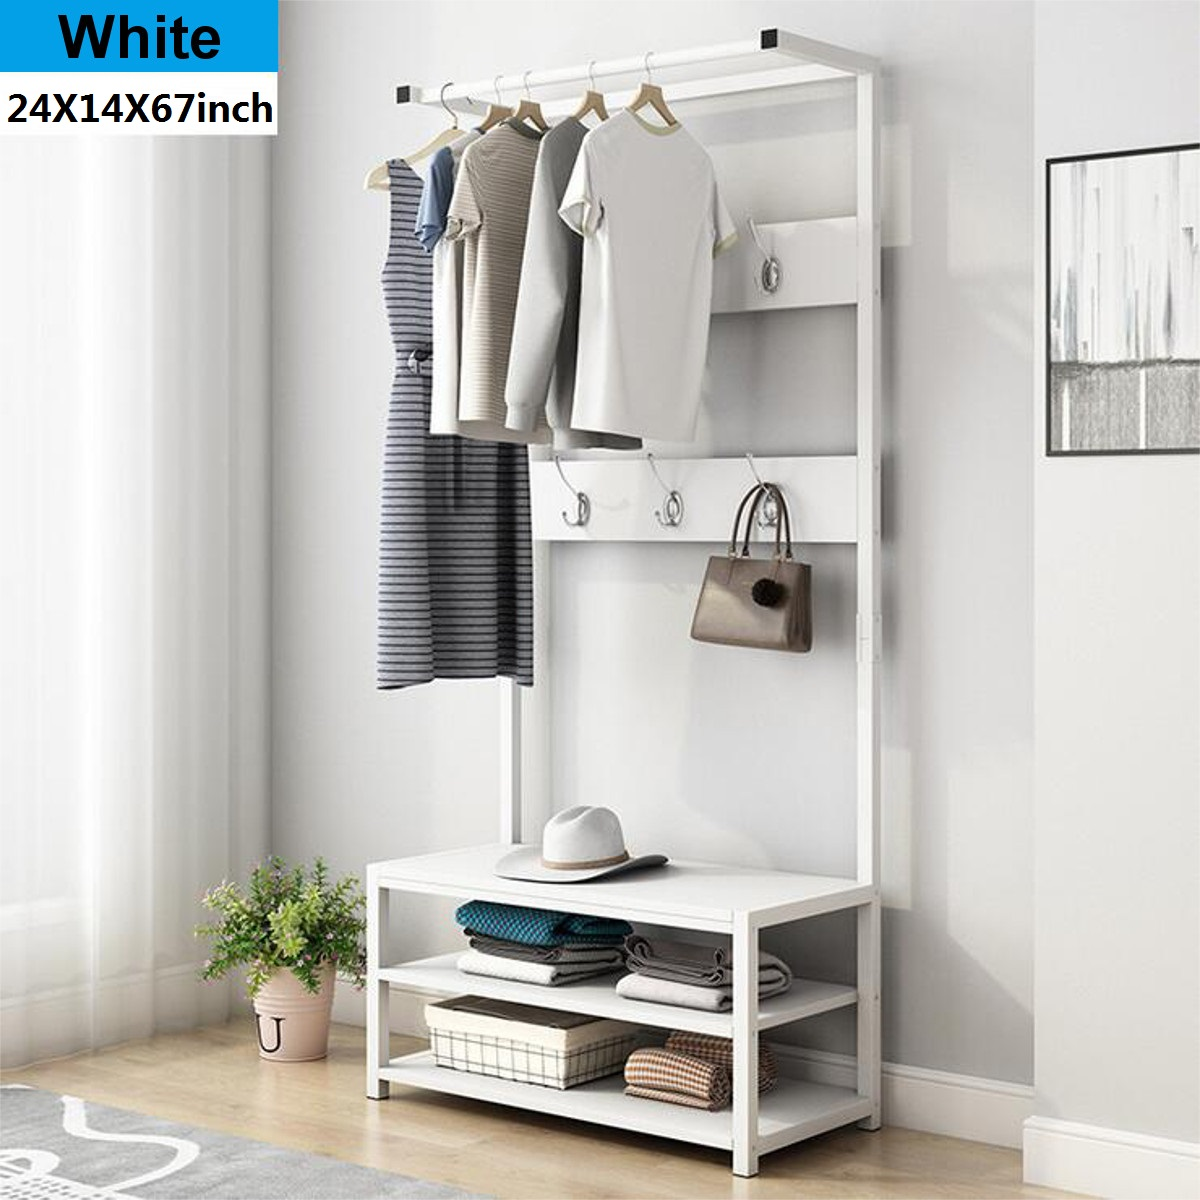 24inch X 67inch Industrial Coat Rack Shoe Bench Hall Tree Entryway Storage Shelf Wood Look Accent Furniture With Metal Frame 3 In 1 Design Easy Assembly Walmart Com Walmart Com